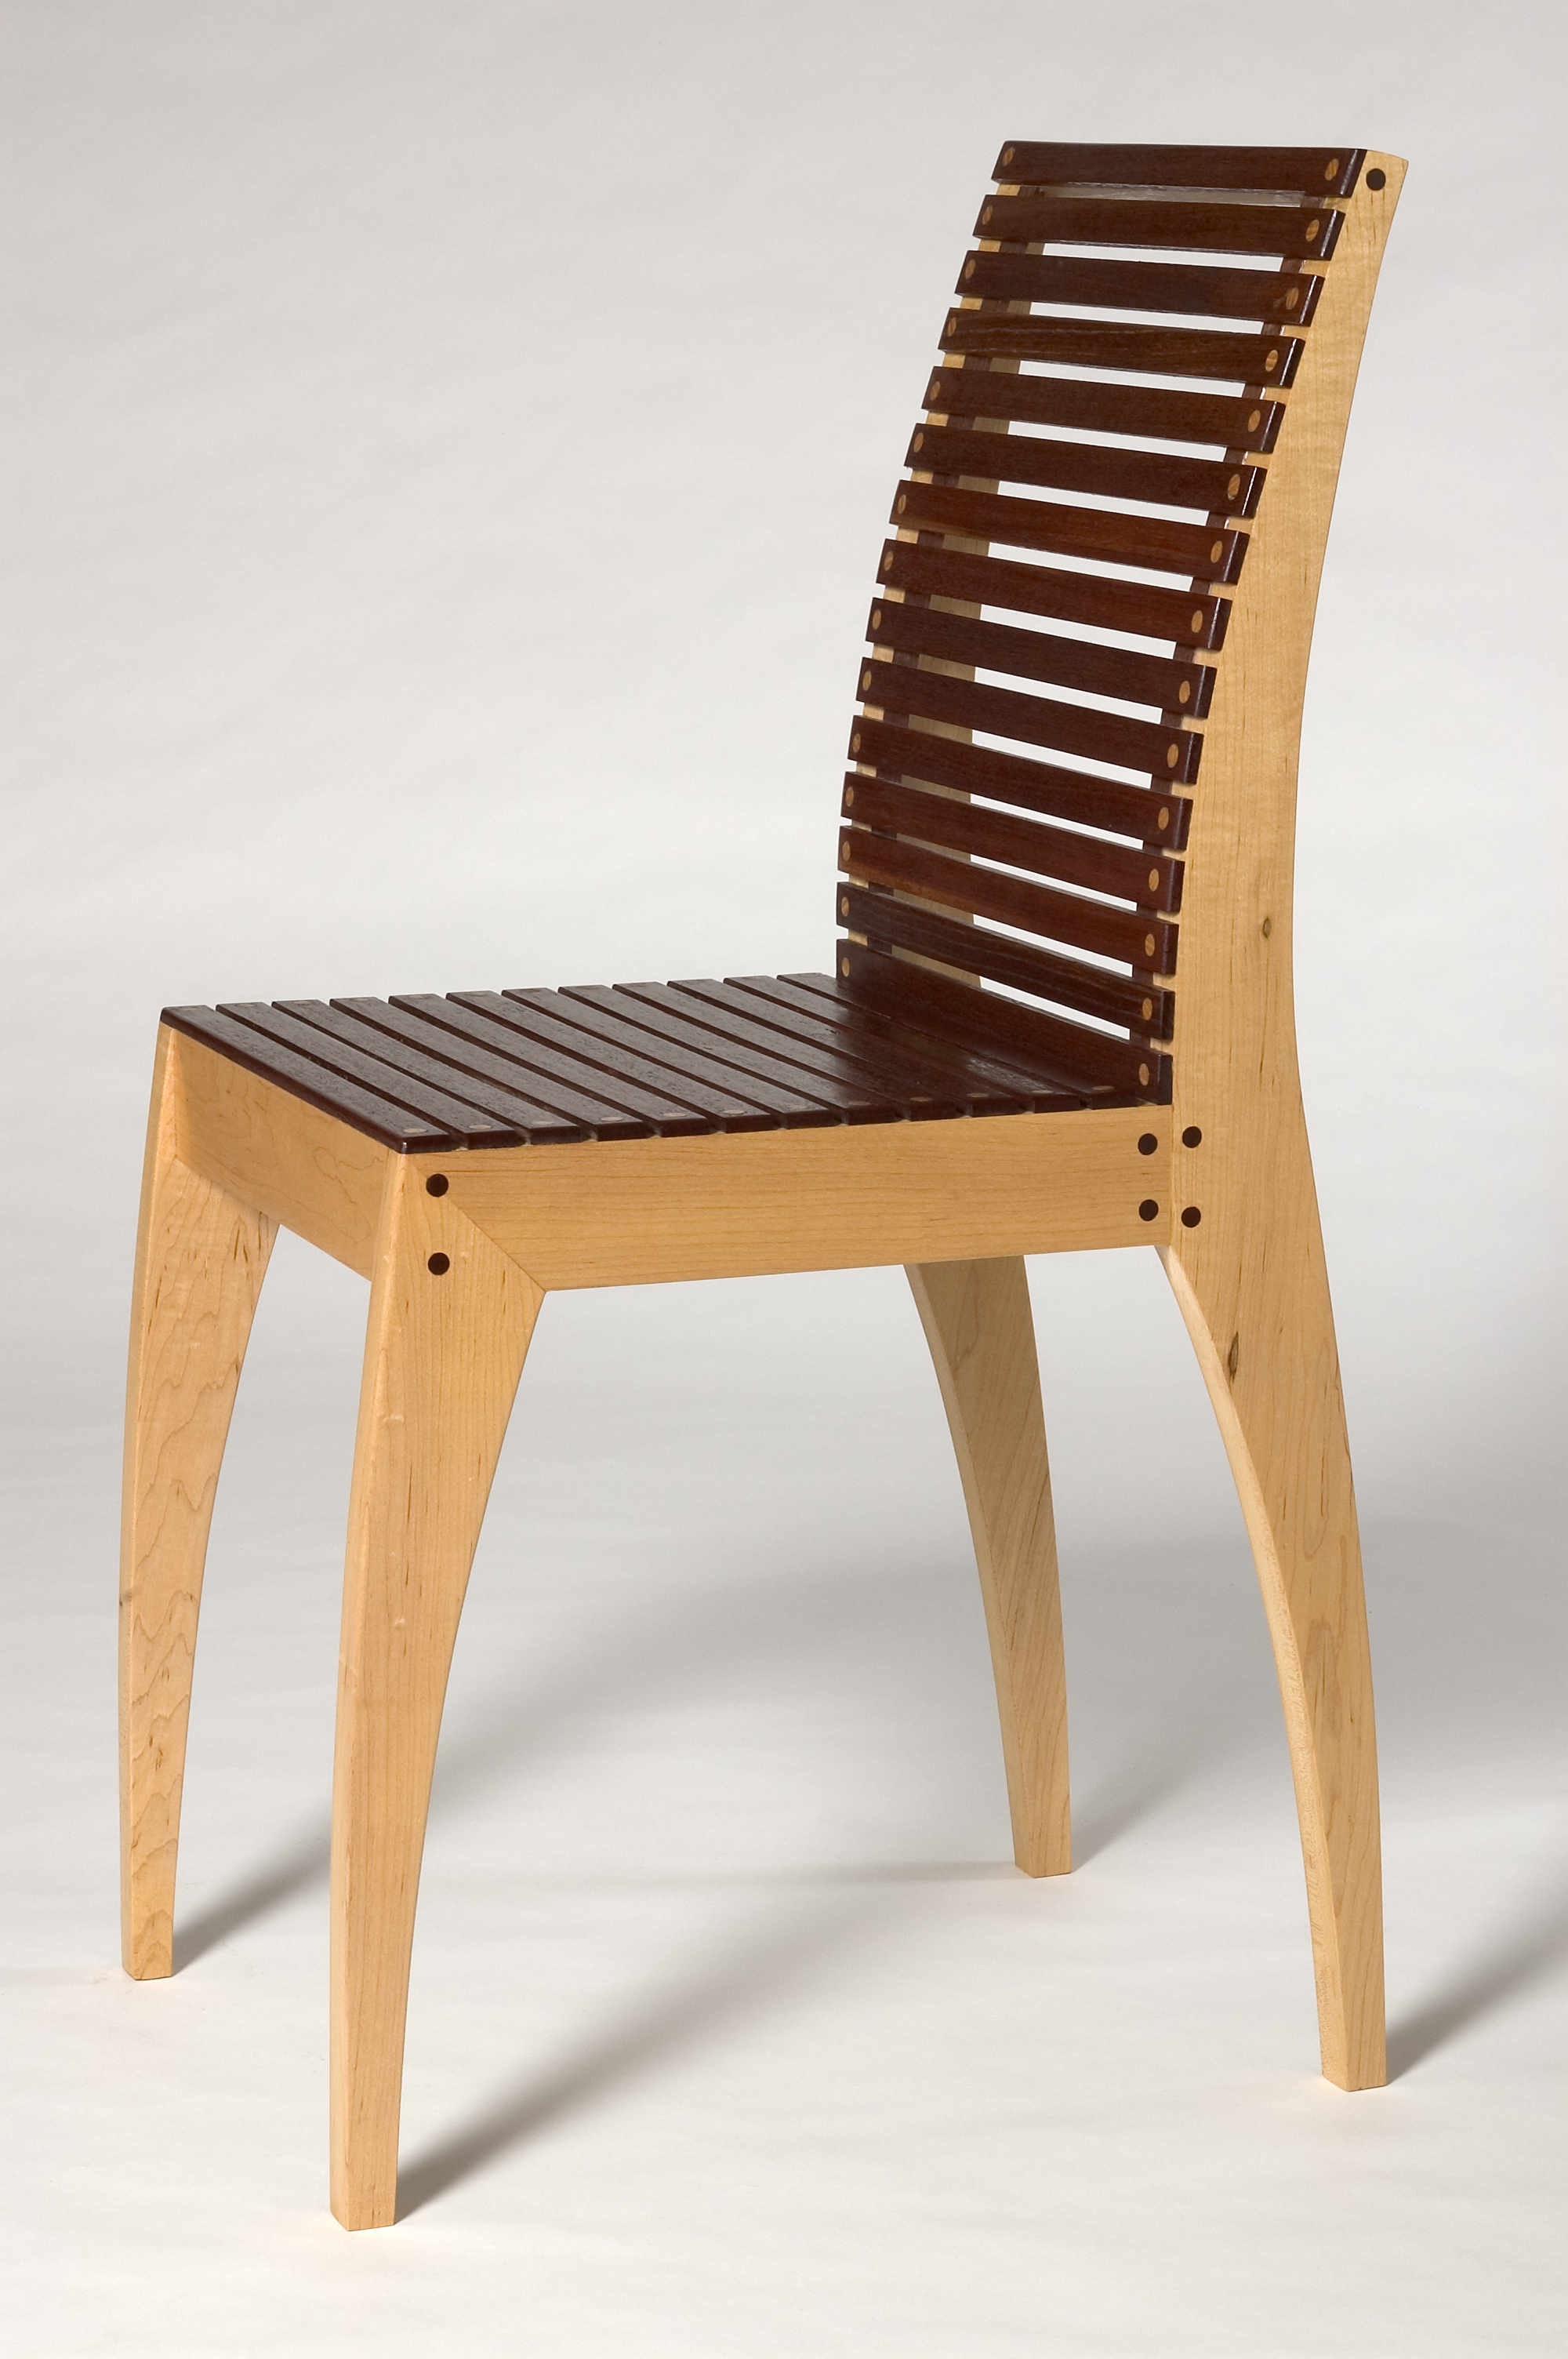 chairs — Lindsay Marks